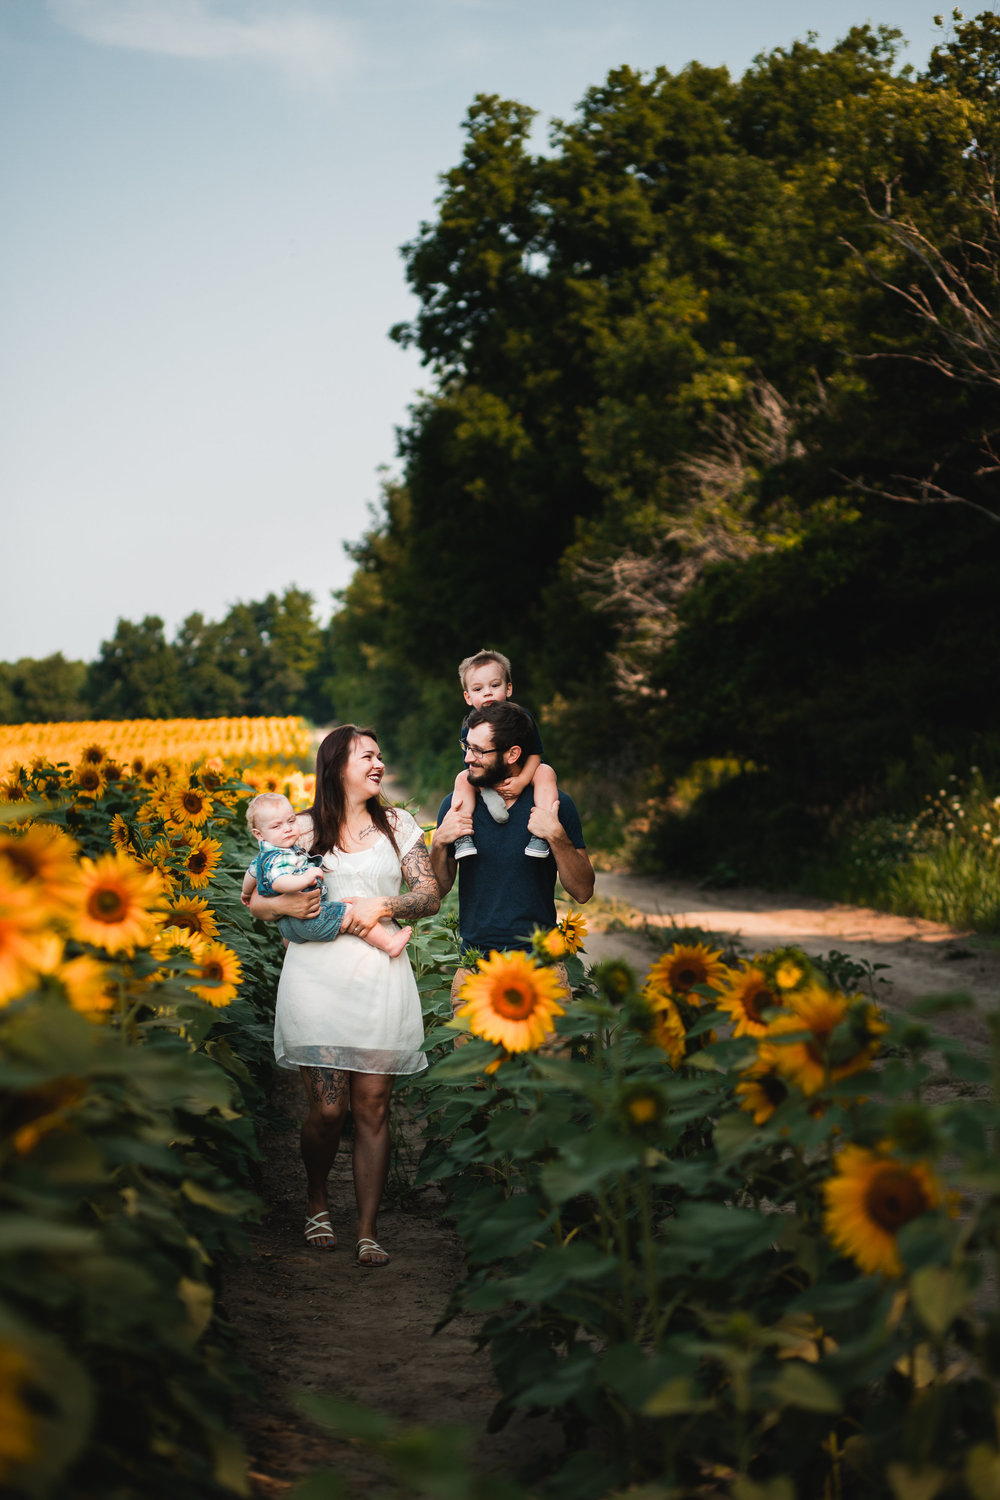 Kaylee and Robert Family Sunflower Session-Kaylee and Robert Family Su-0036.jpg